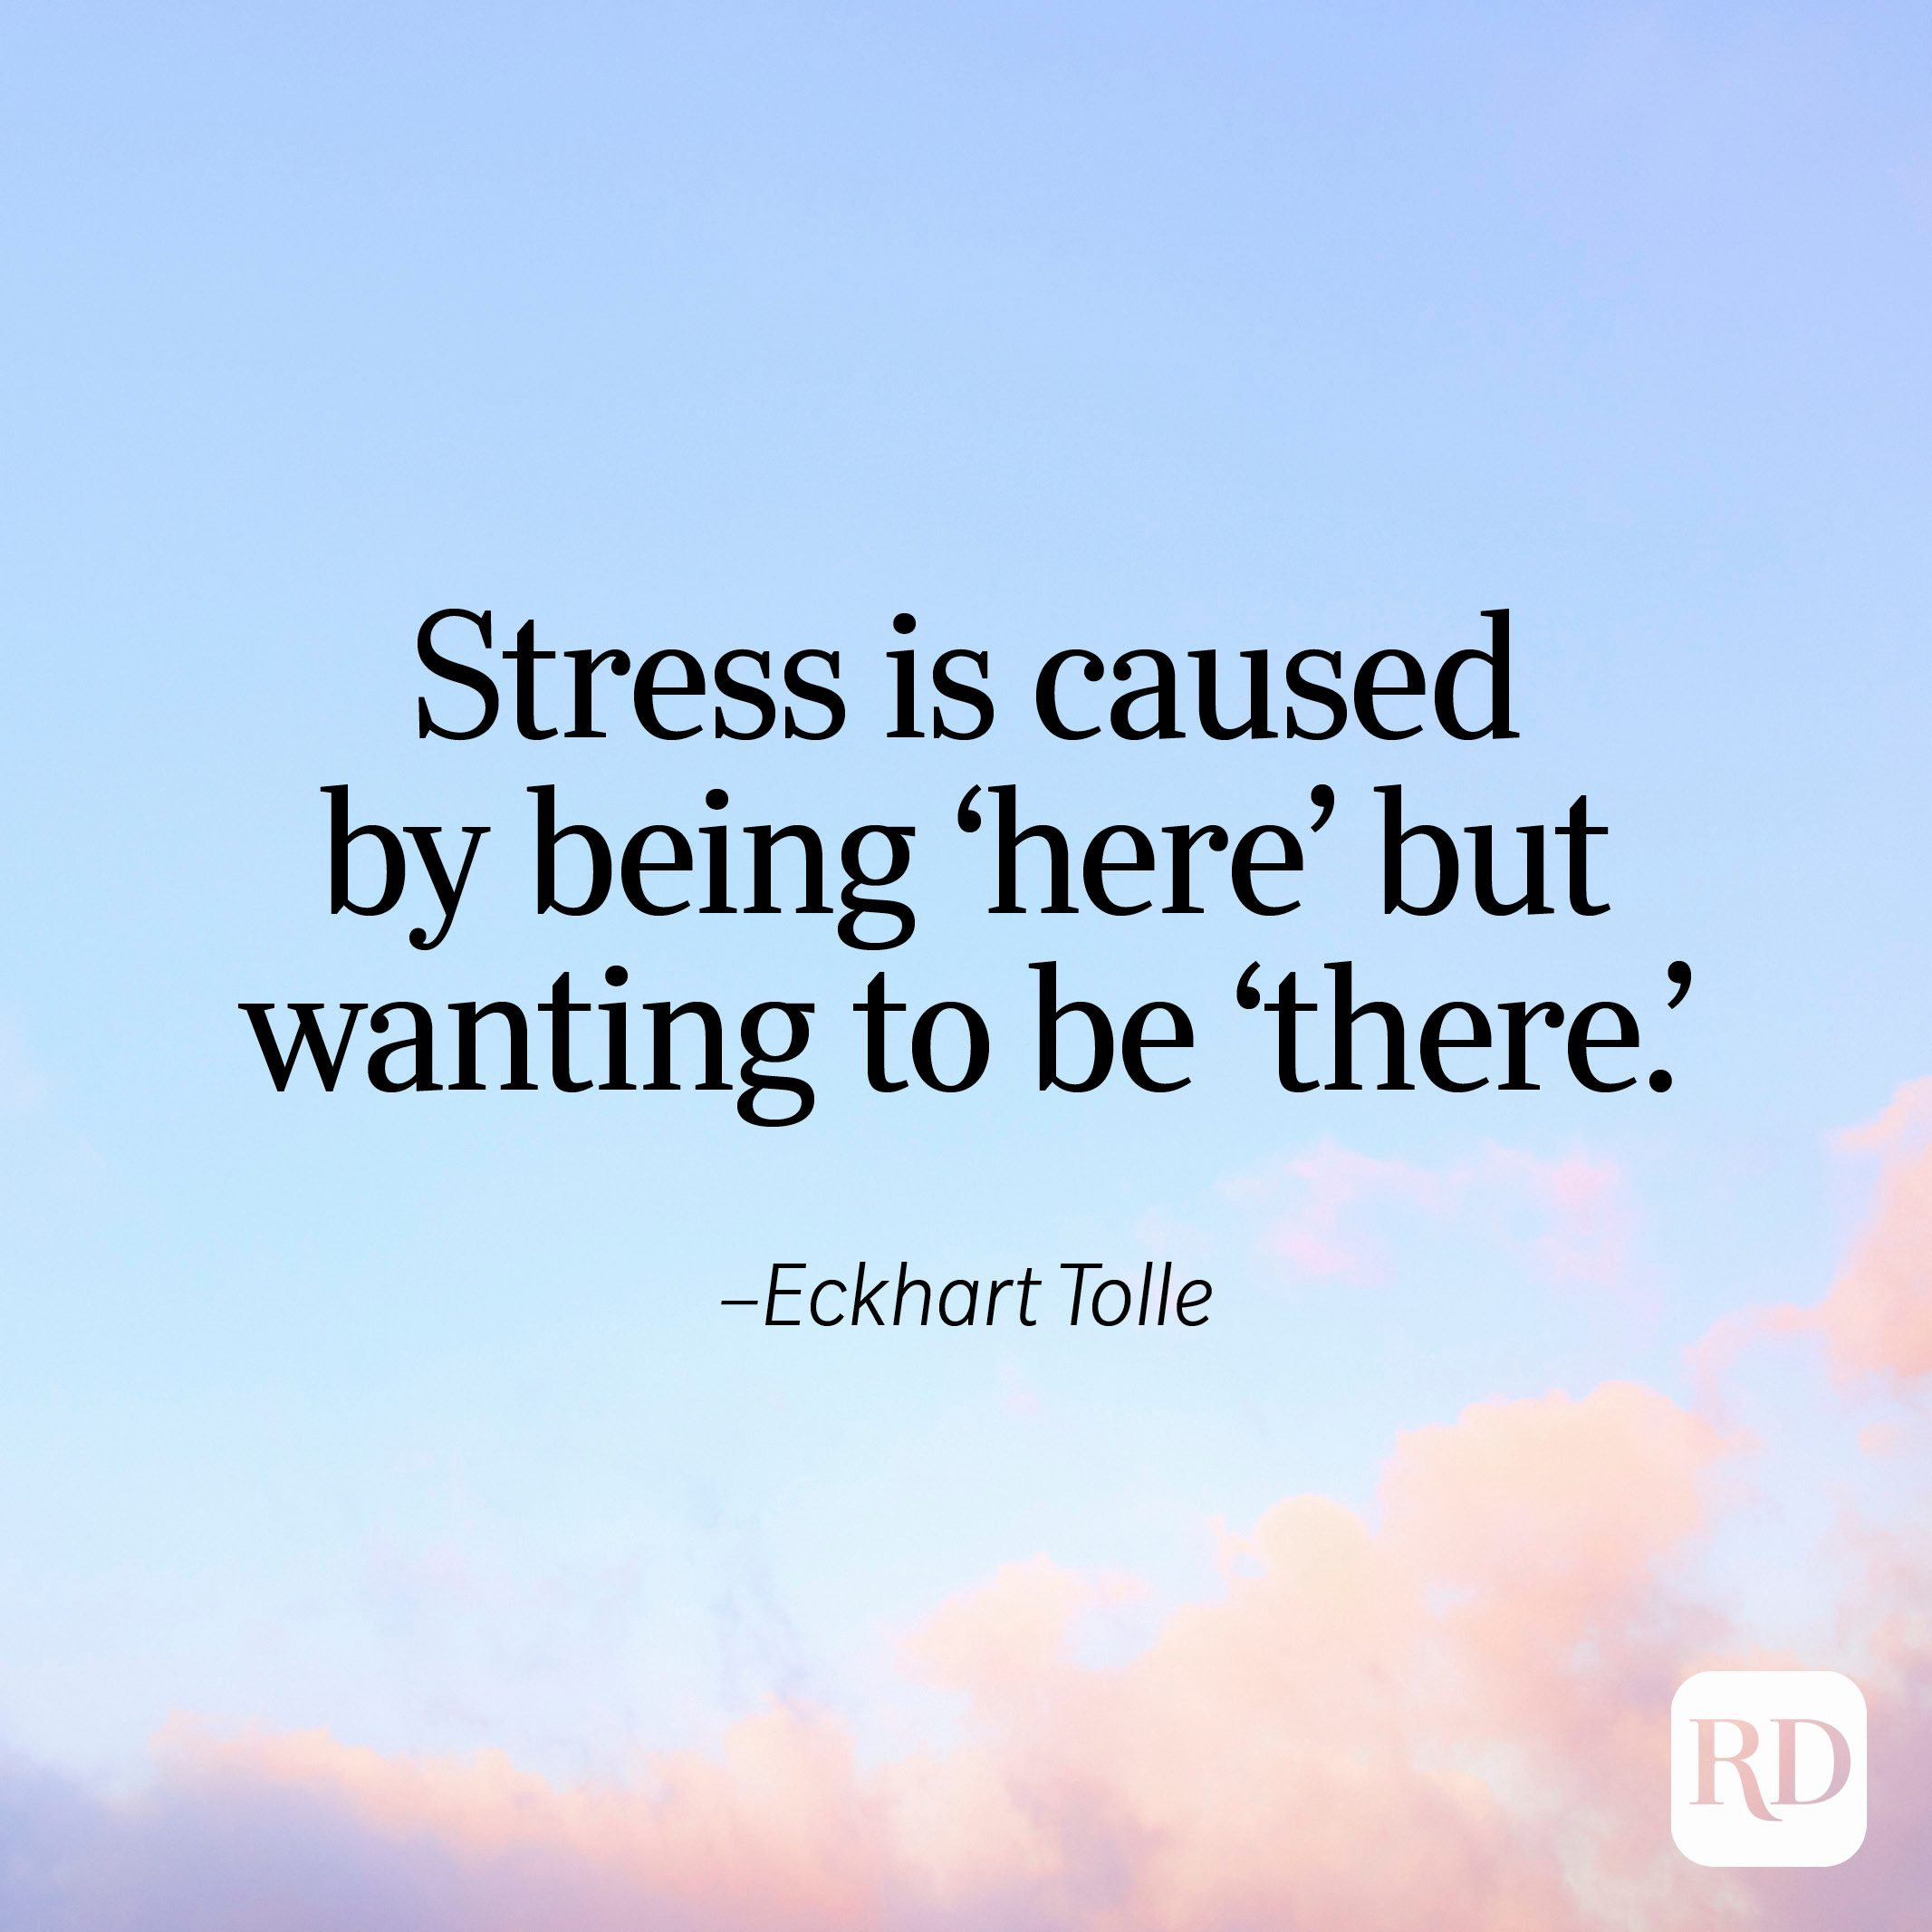 """""""Stress is caused by being 'here' but wanting to be 'there.'"""" —Eckhart Tolle"""